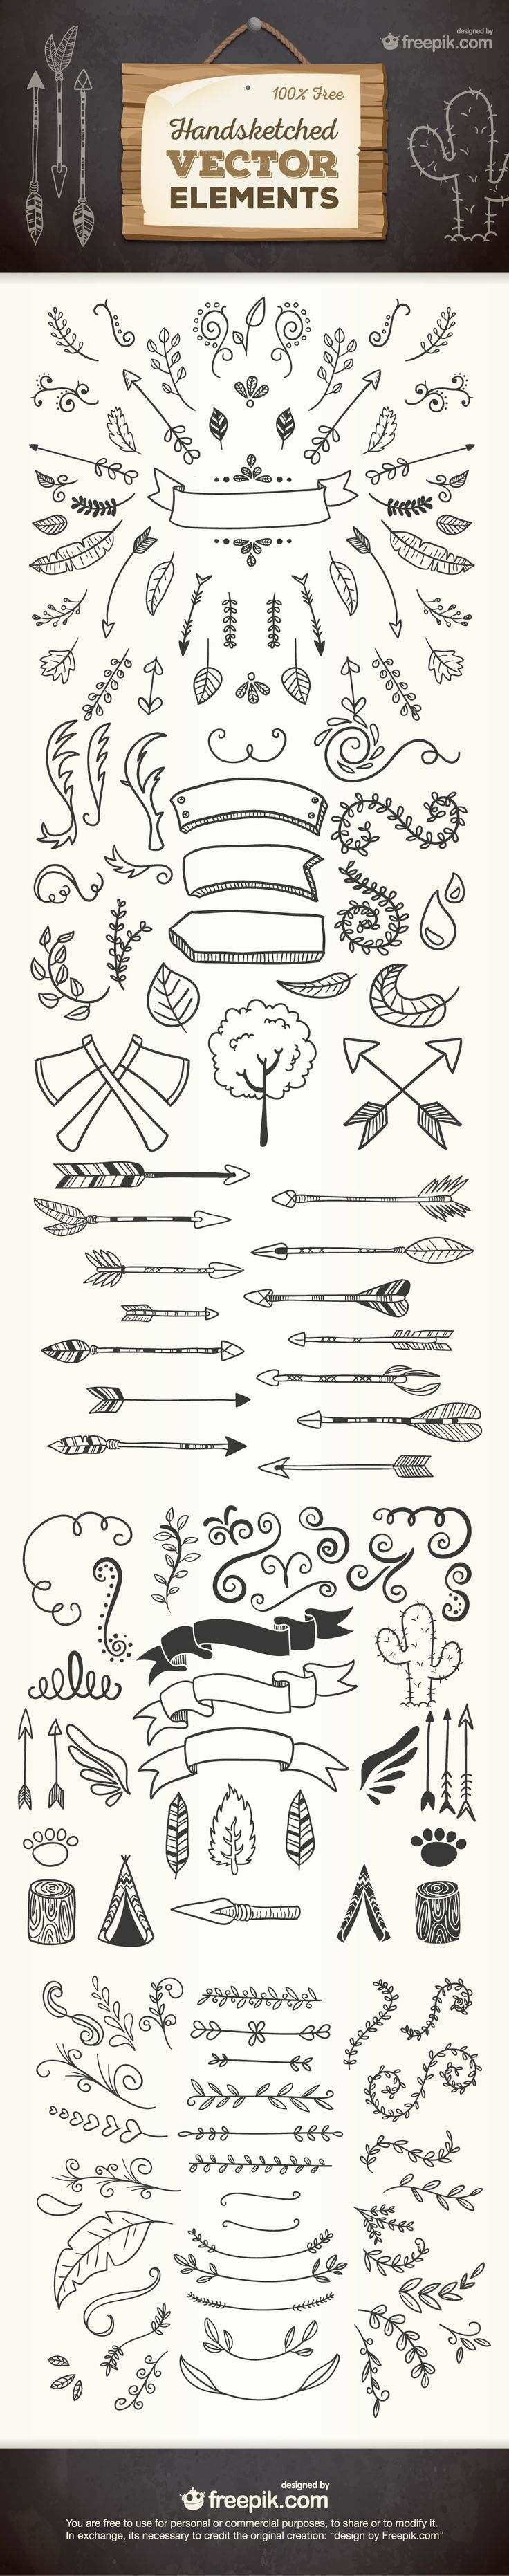 Free Hand sketched vector elements